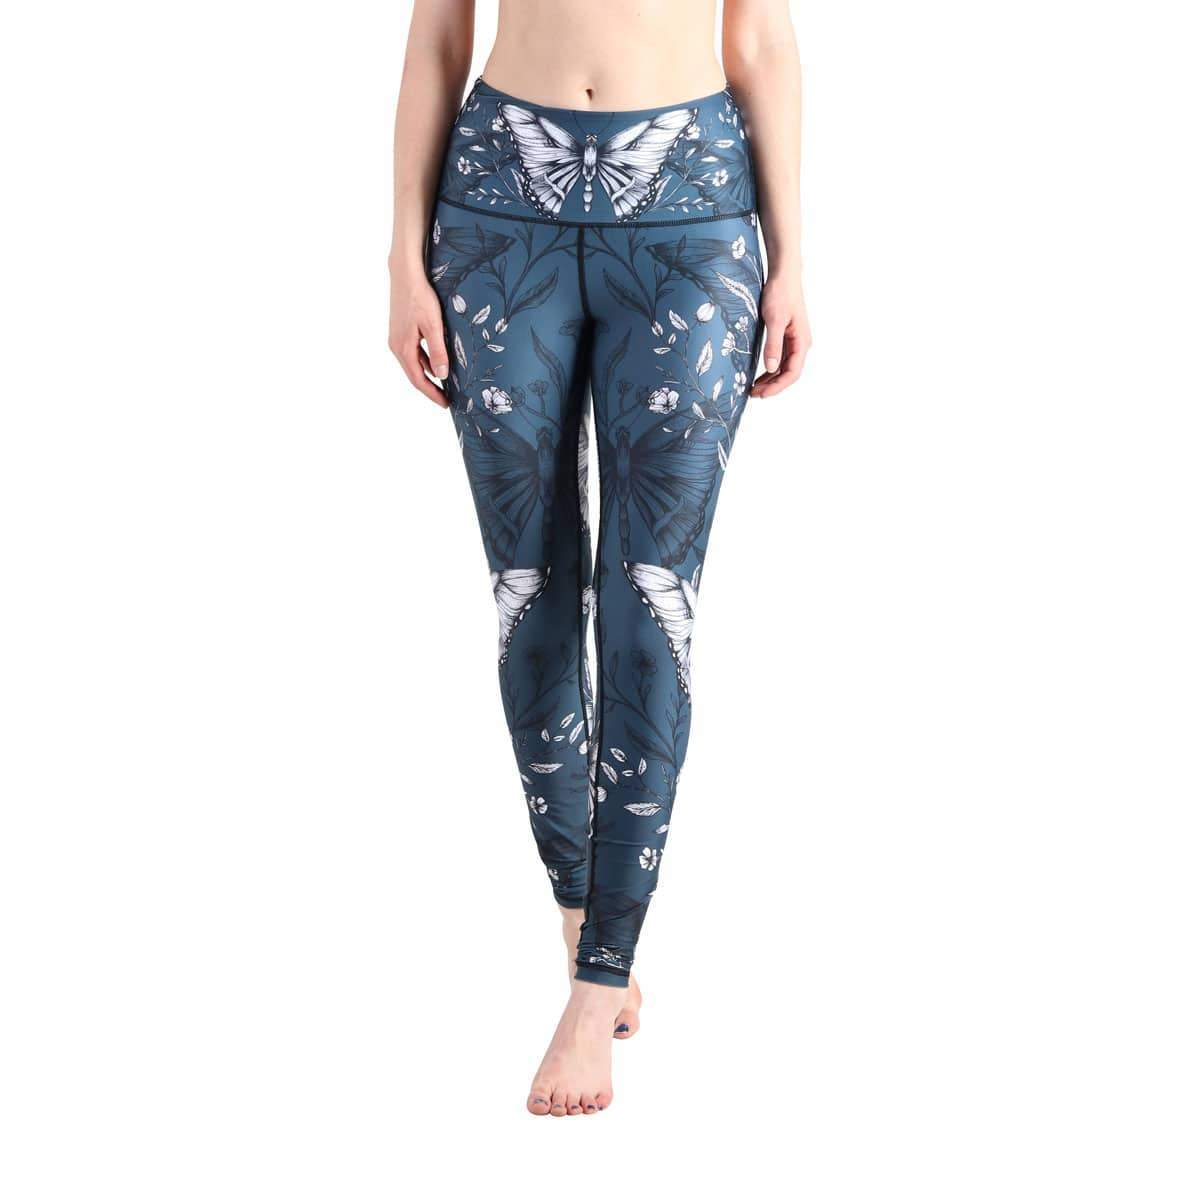 hot-yoga-butterfly-leggings-fitness-min.jpg